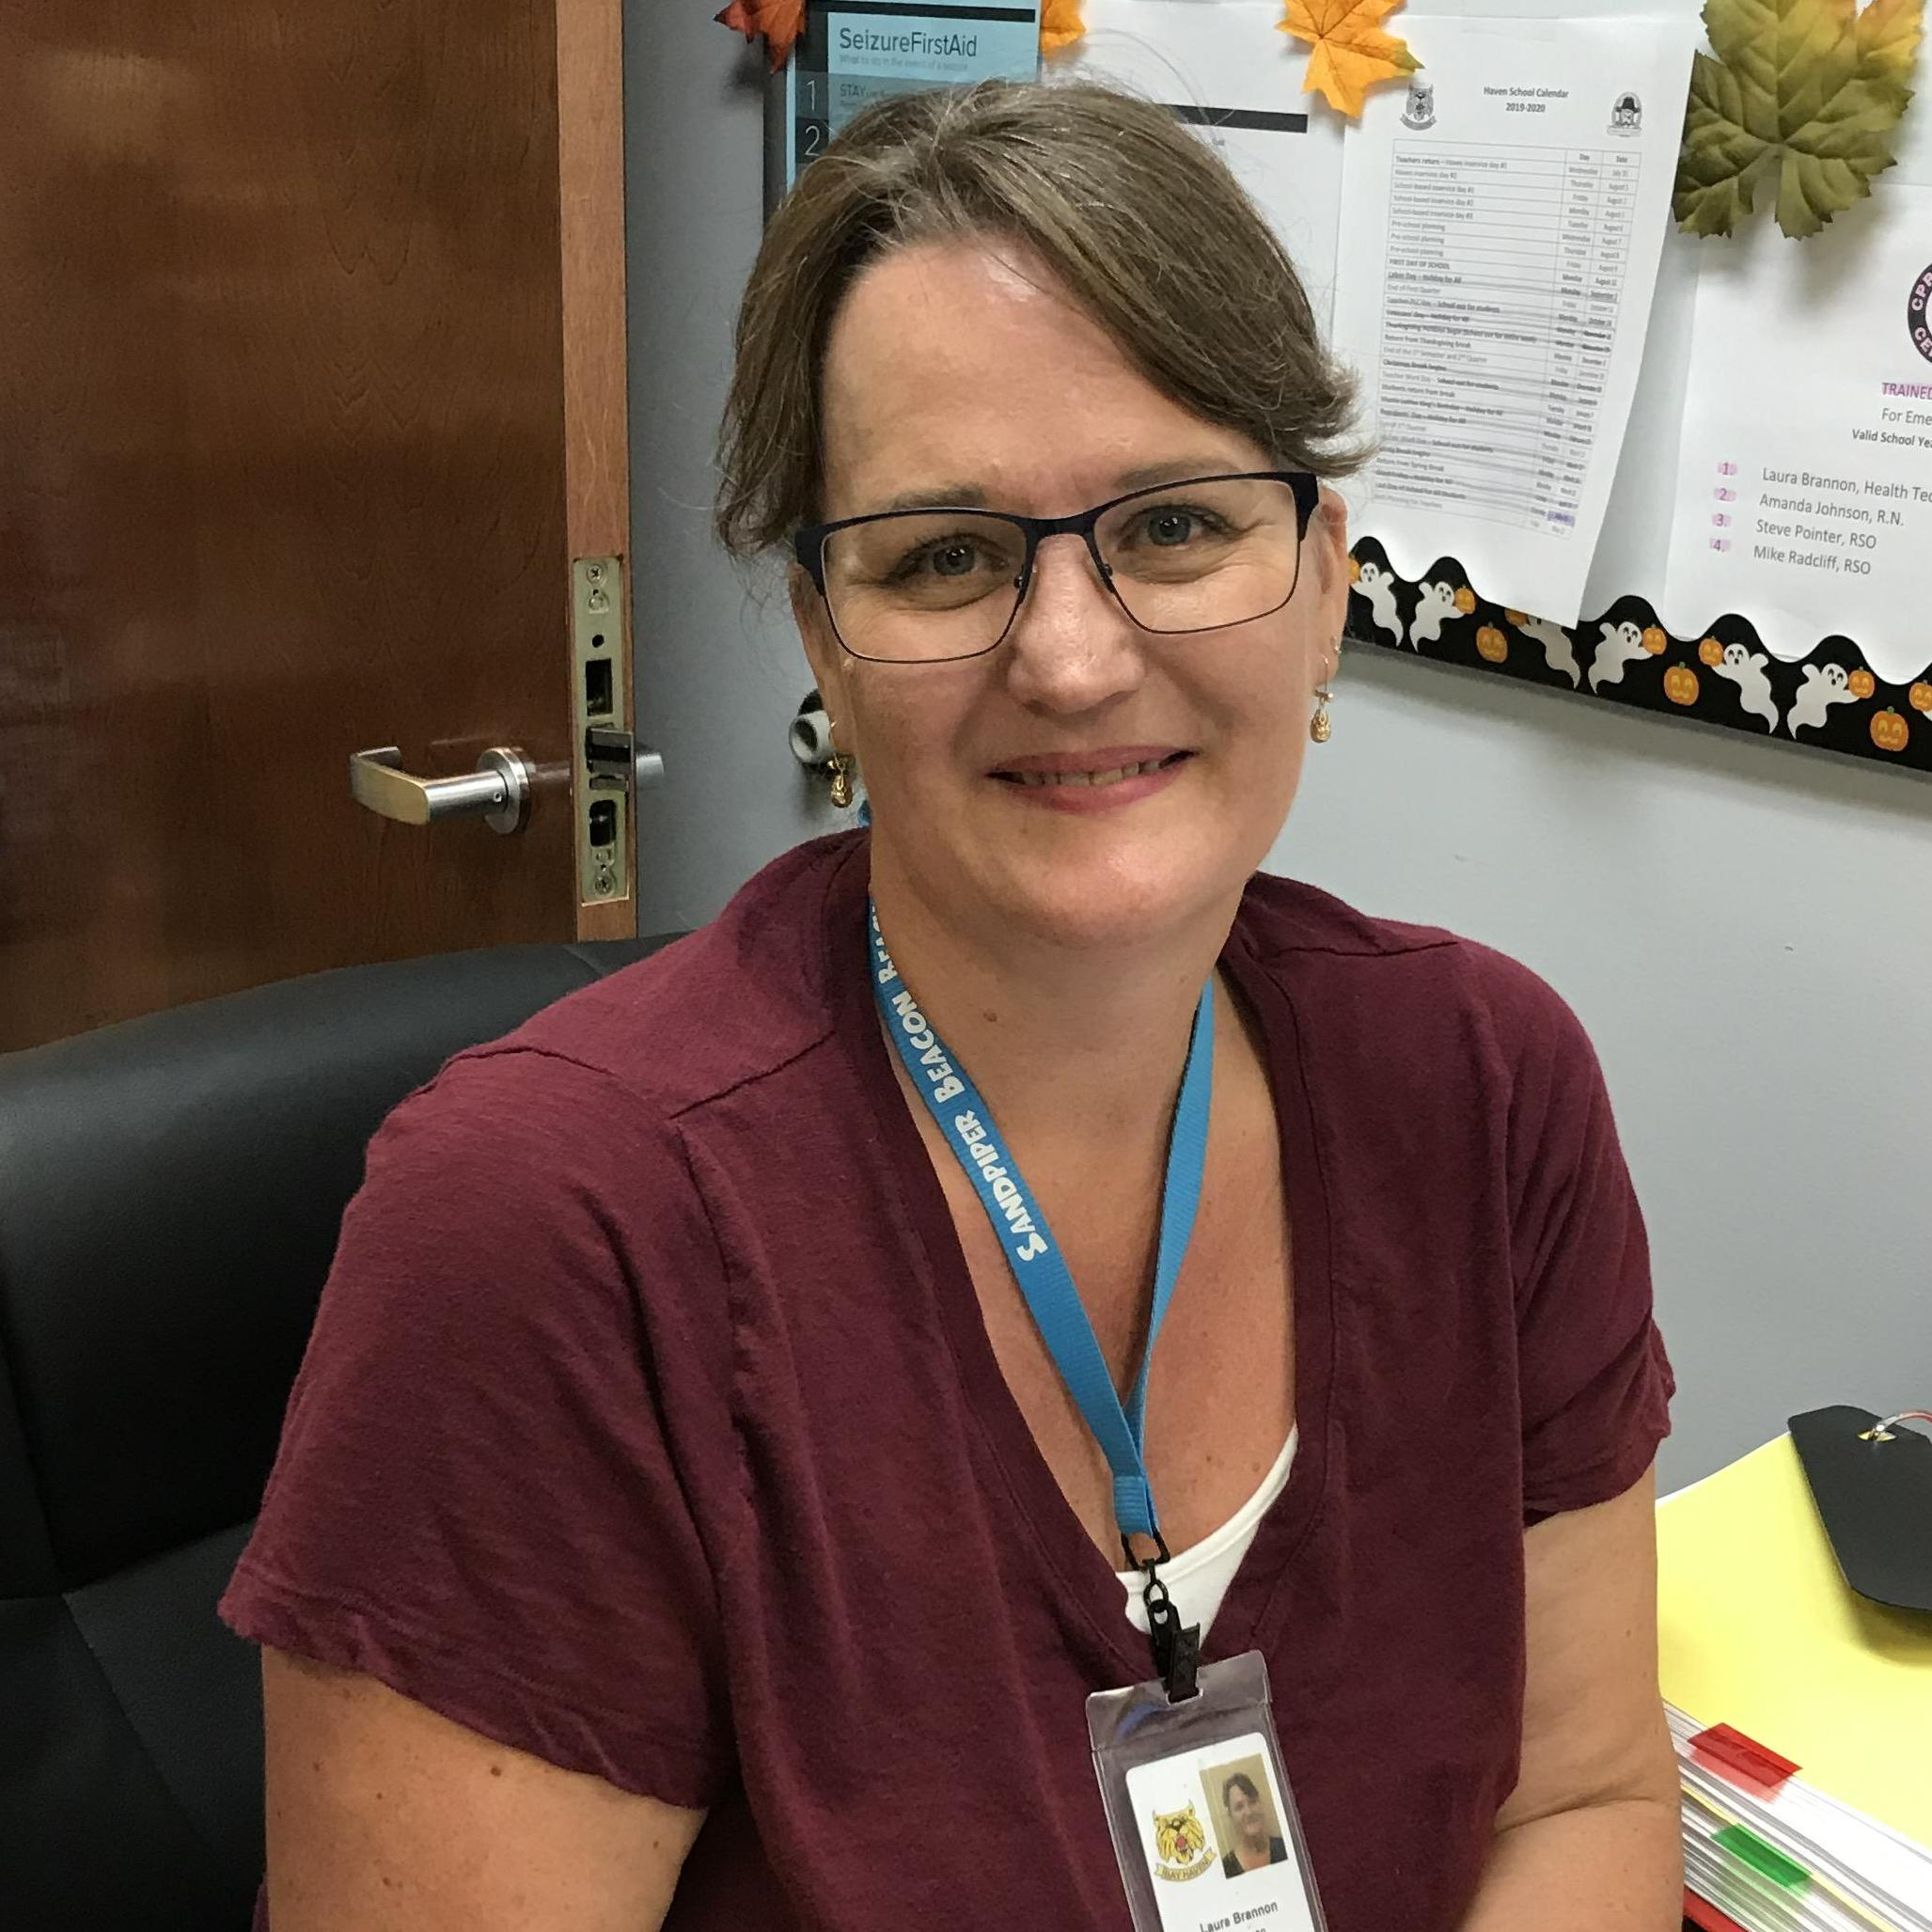 Laura Brannon -School Health Technician's Profile Photo